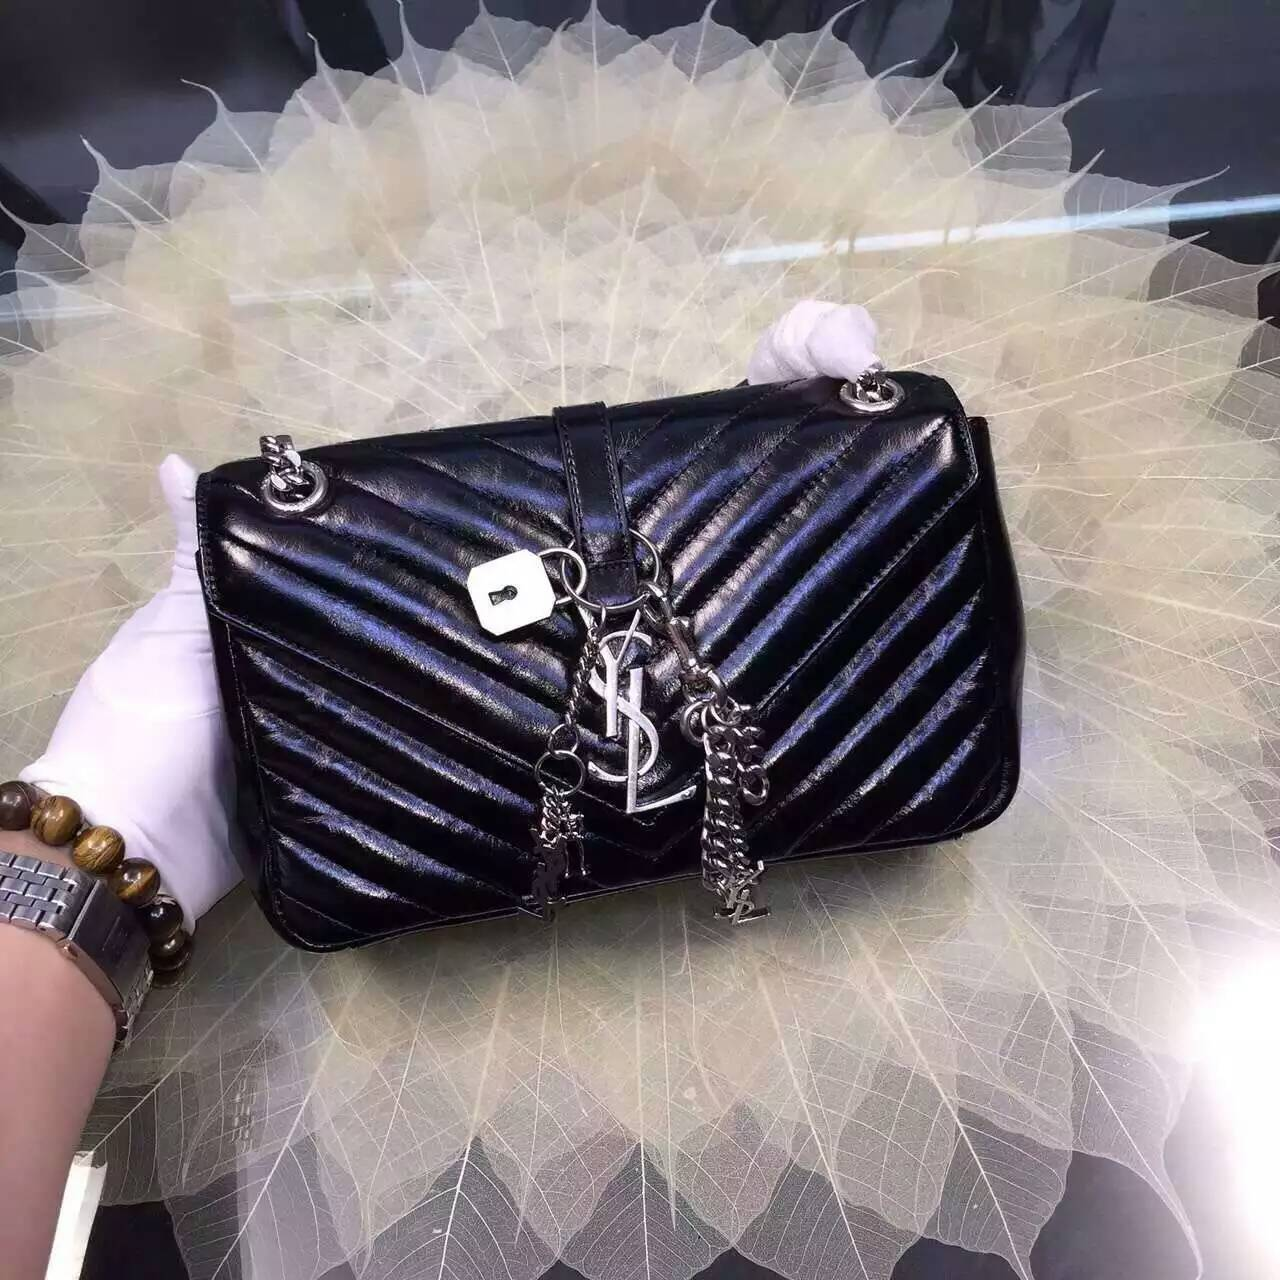 2016 Cheap YSL Out Sale with Free Shipping-Saint Laurent Classic Medium Baby Monogram Satchel in Black Matelasse Leather Silver